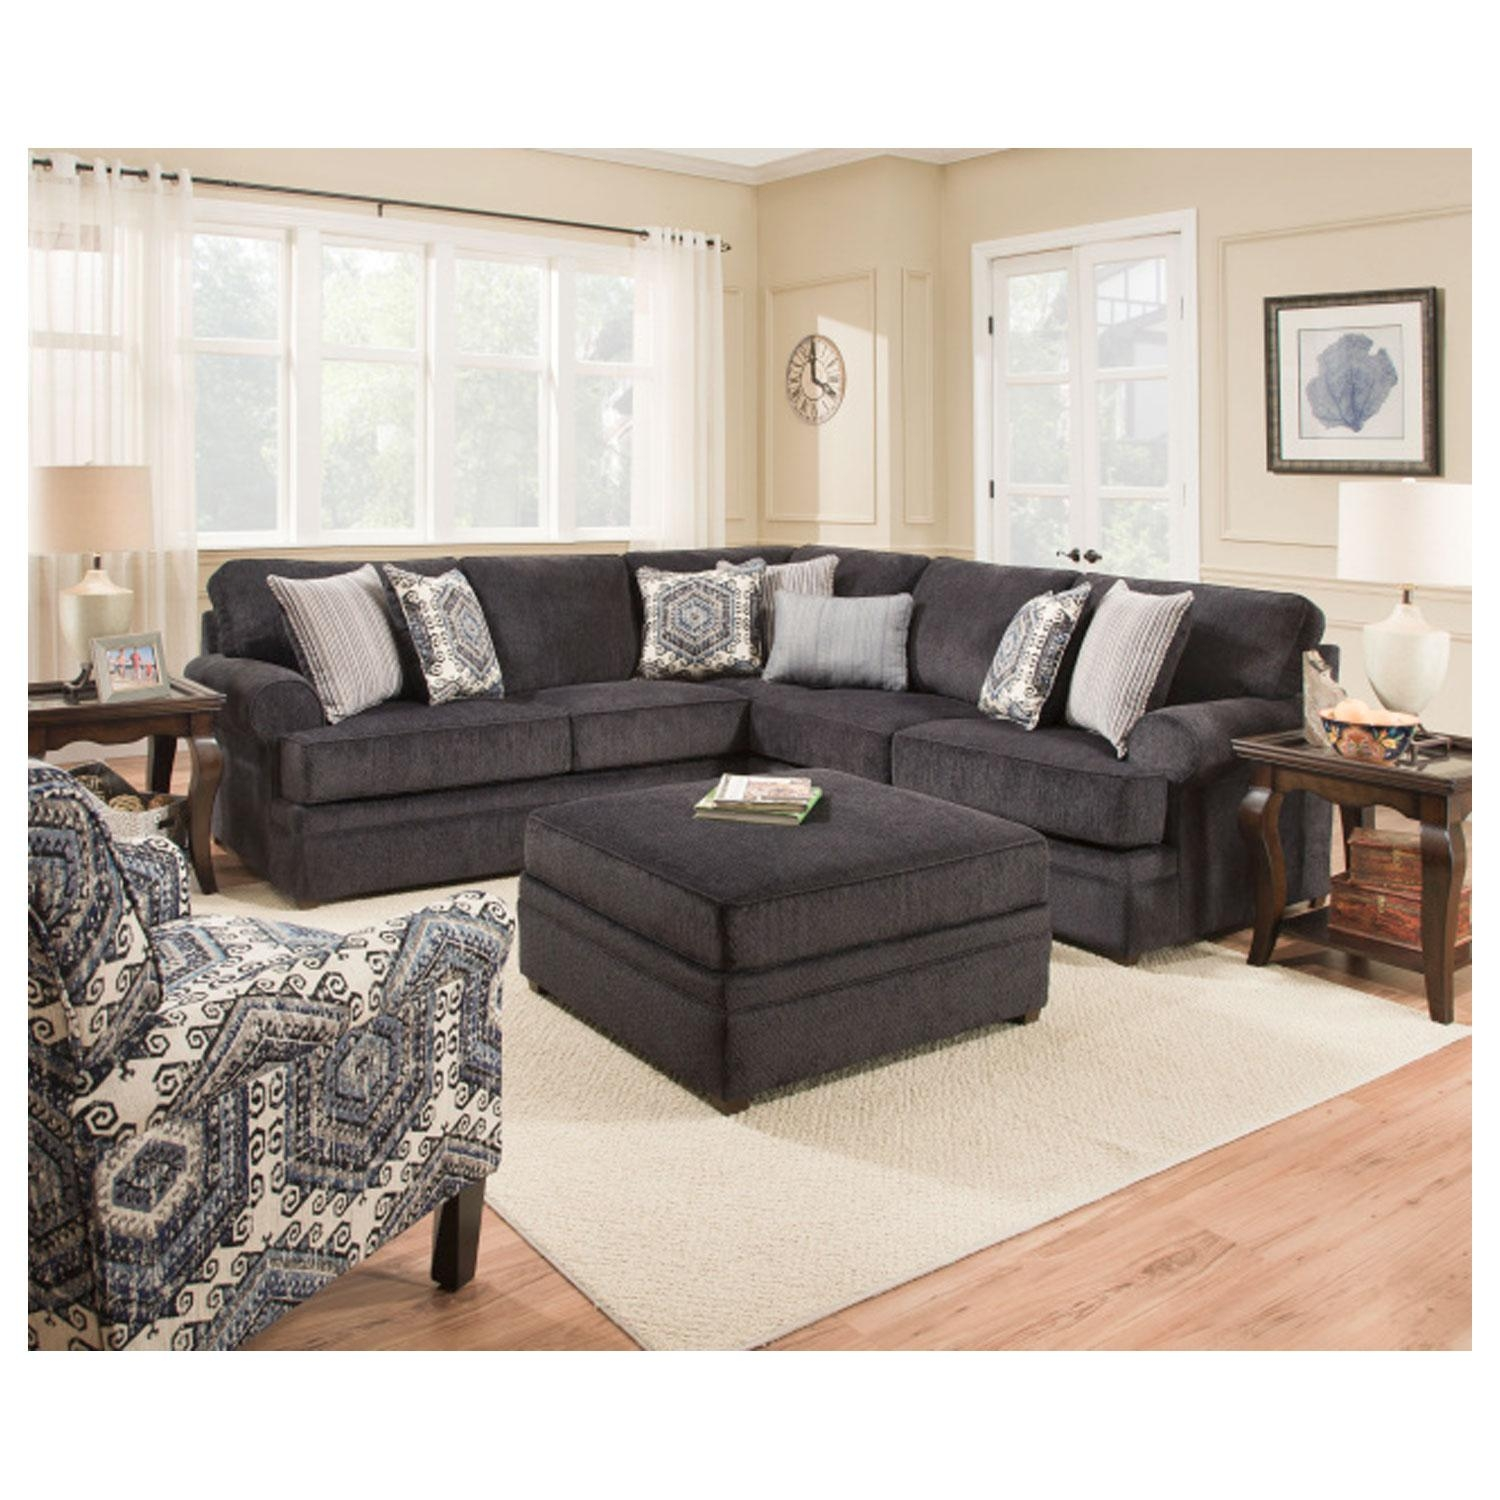 Simmons 8530Br Sectional Sofa Bellamy Slate | Hope Home Regarding Simmons Sectional Sofas (Image 5 of 20)